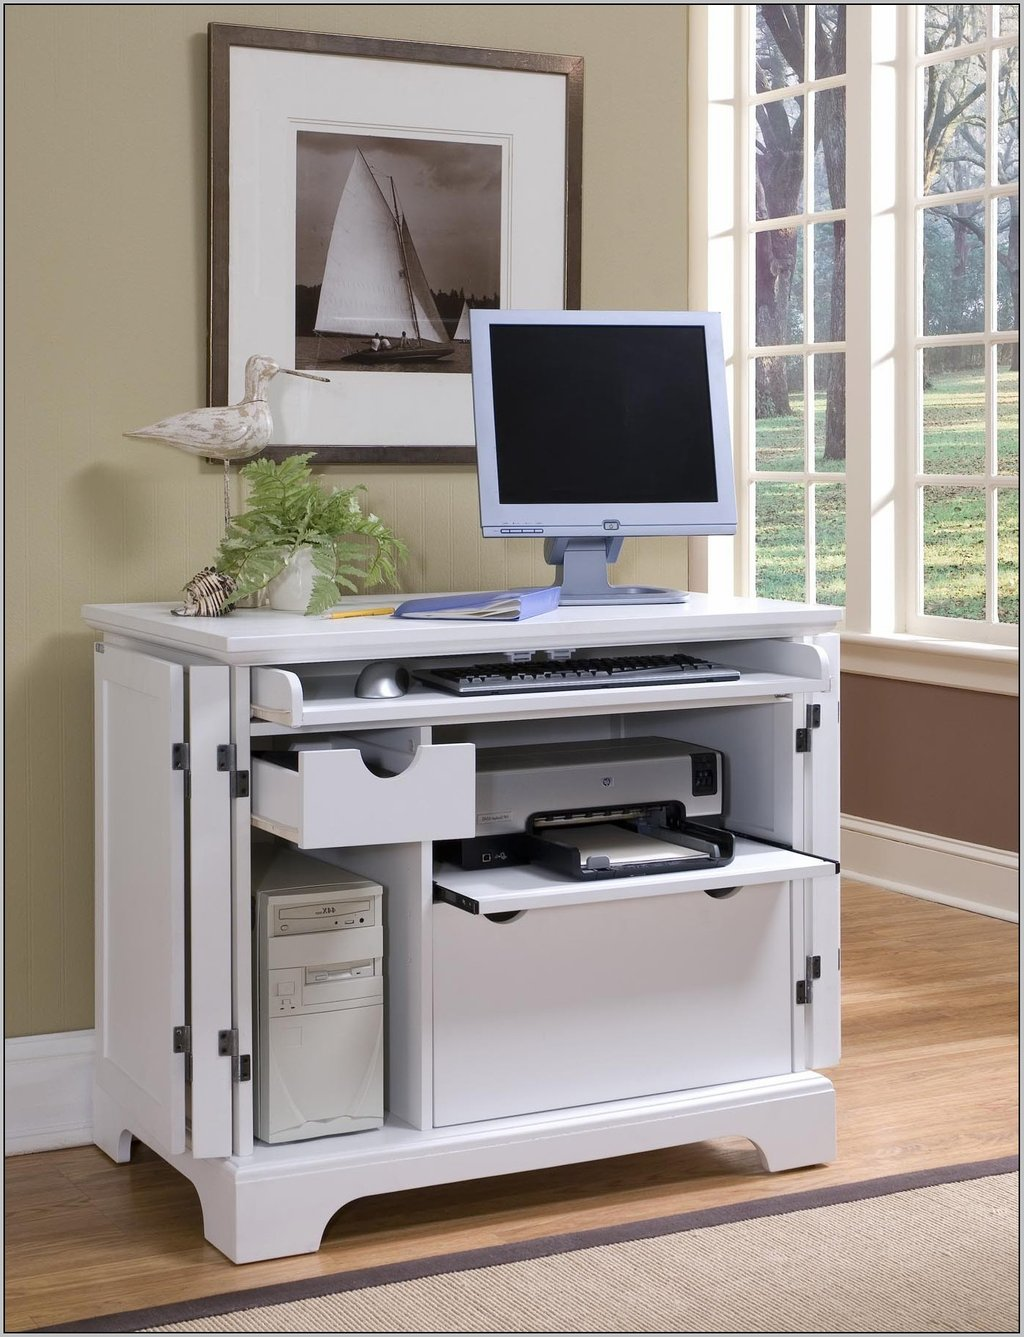 Image of: Compact Computer Desk Storage Whitevan White Corner Computer Desk,  Creating A Modern